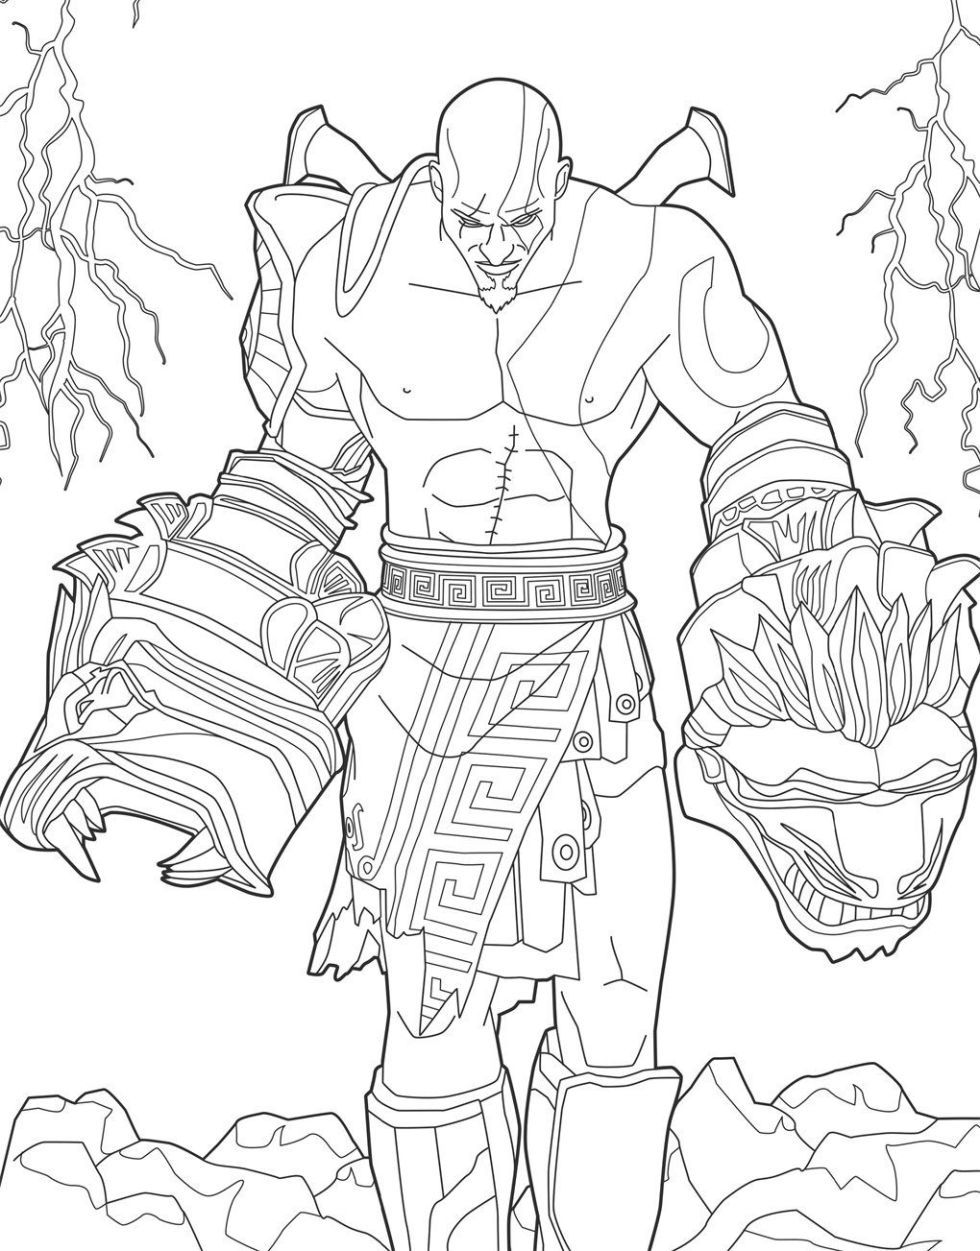 The Playstation Colouring Book Is Out Today Coloring Books Kratos God Of War Coloring Book Art [ 1251 x 980 Pixel ]